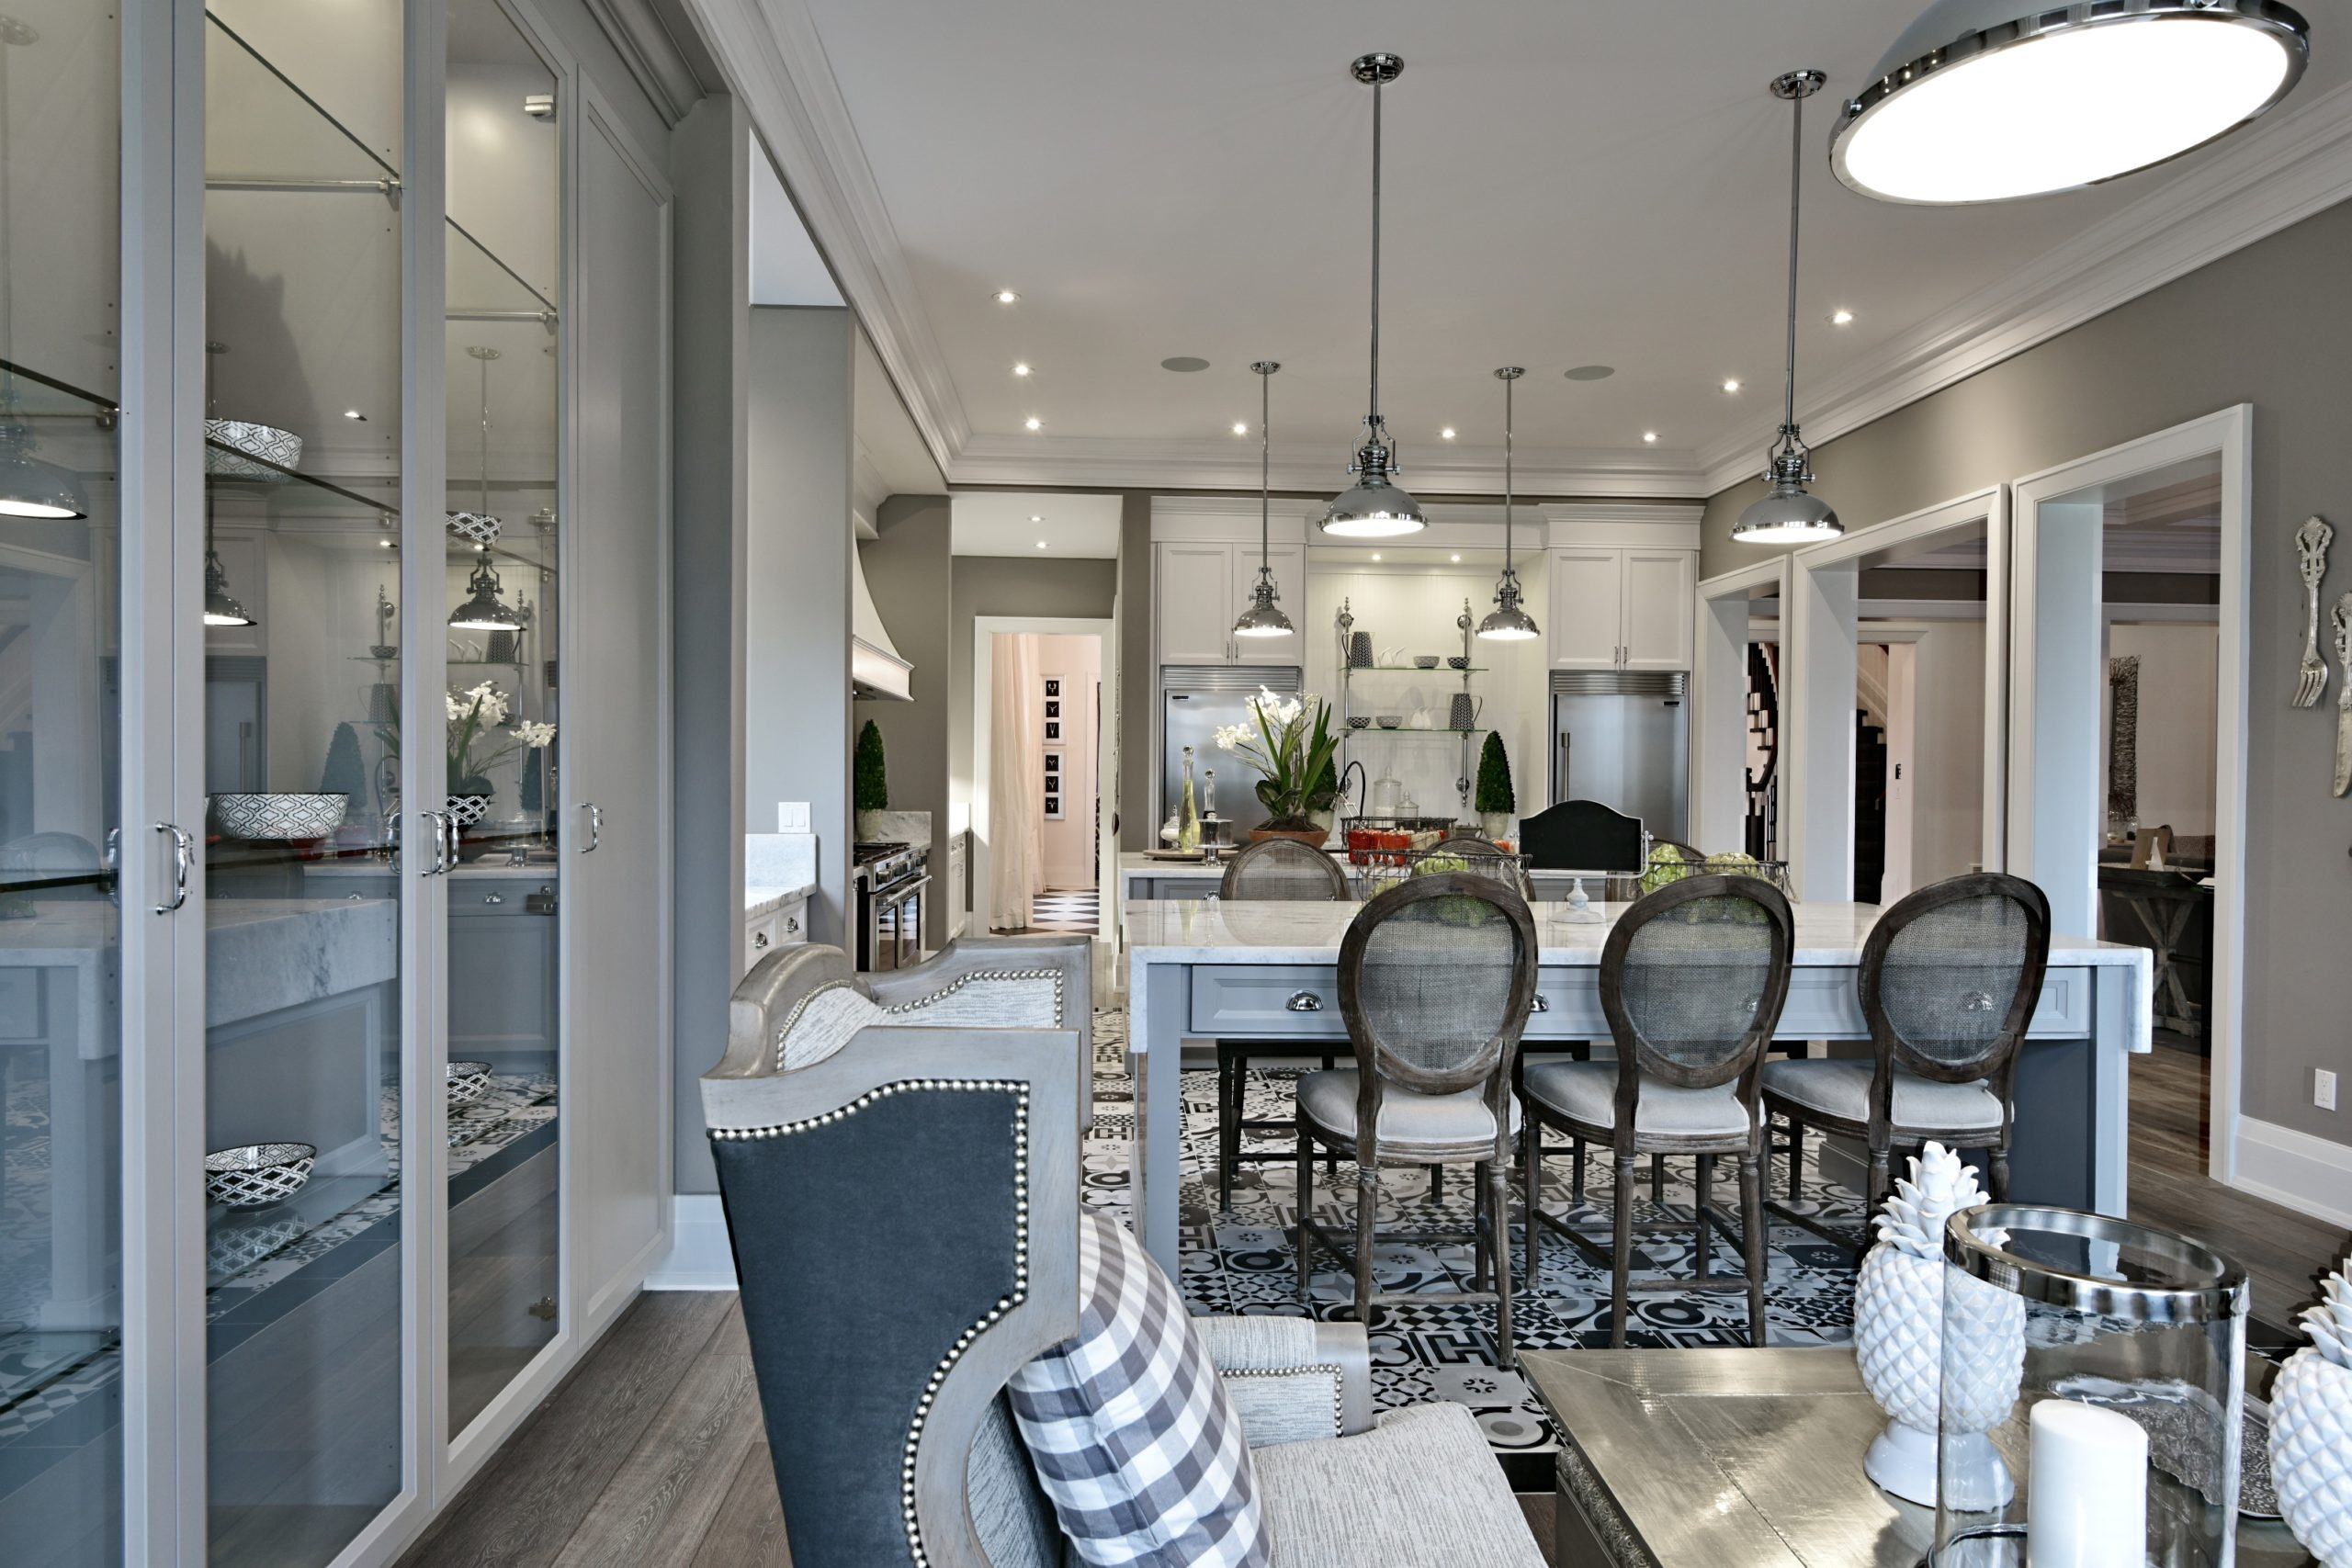 test DSC_0597   Selba Kitchens & Baths is a Canadian based ...